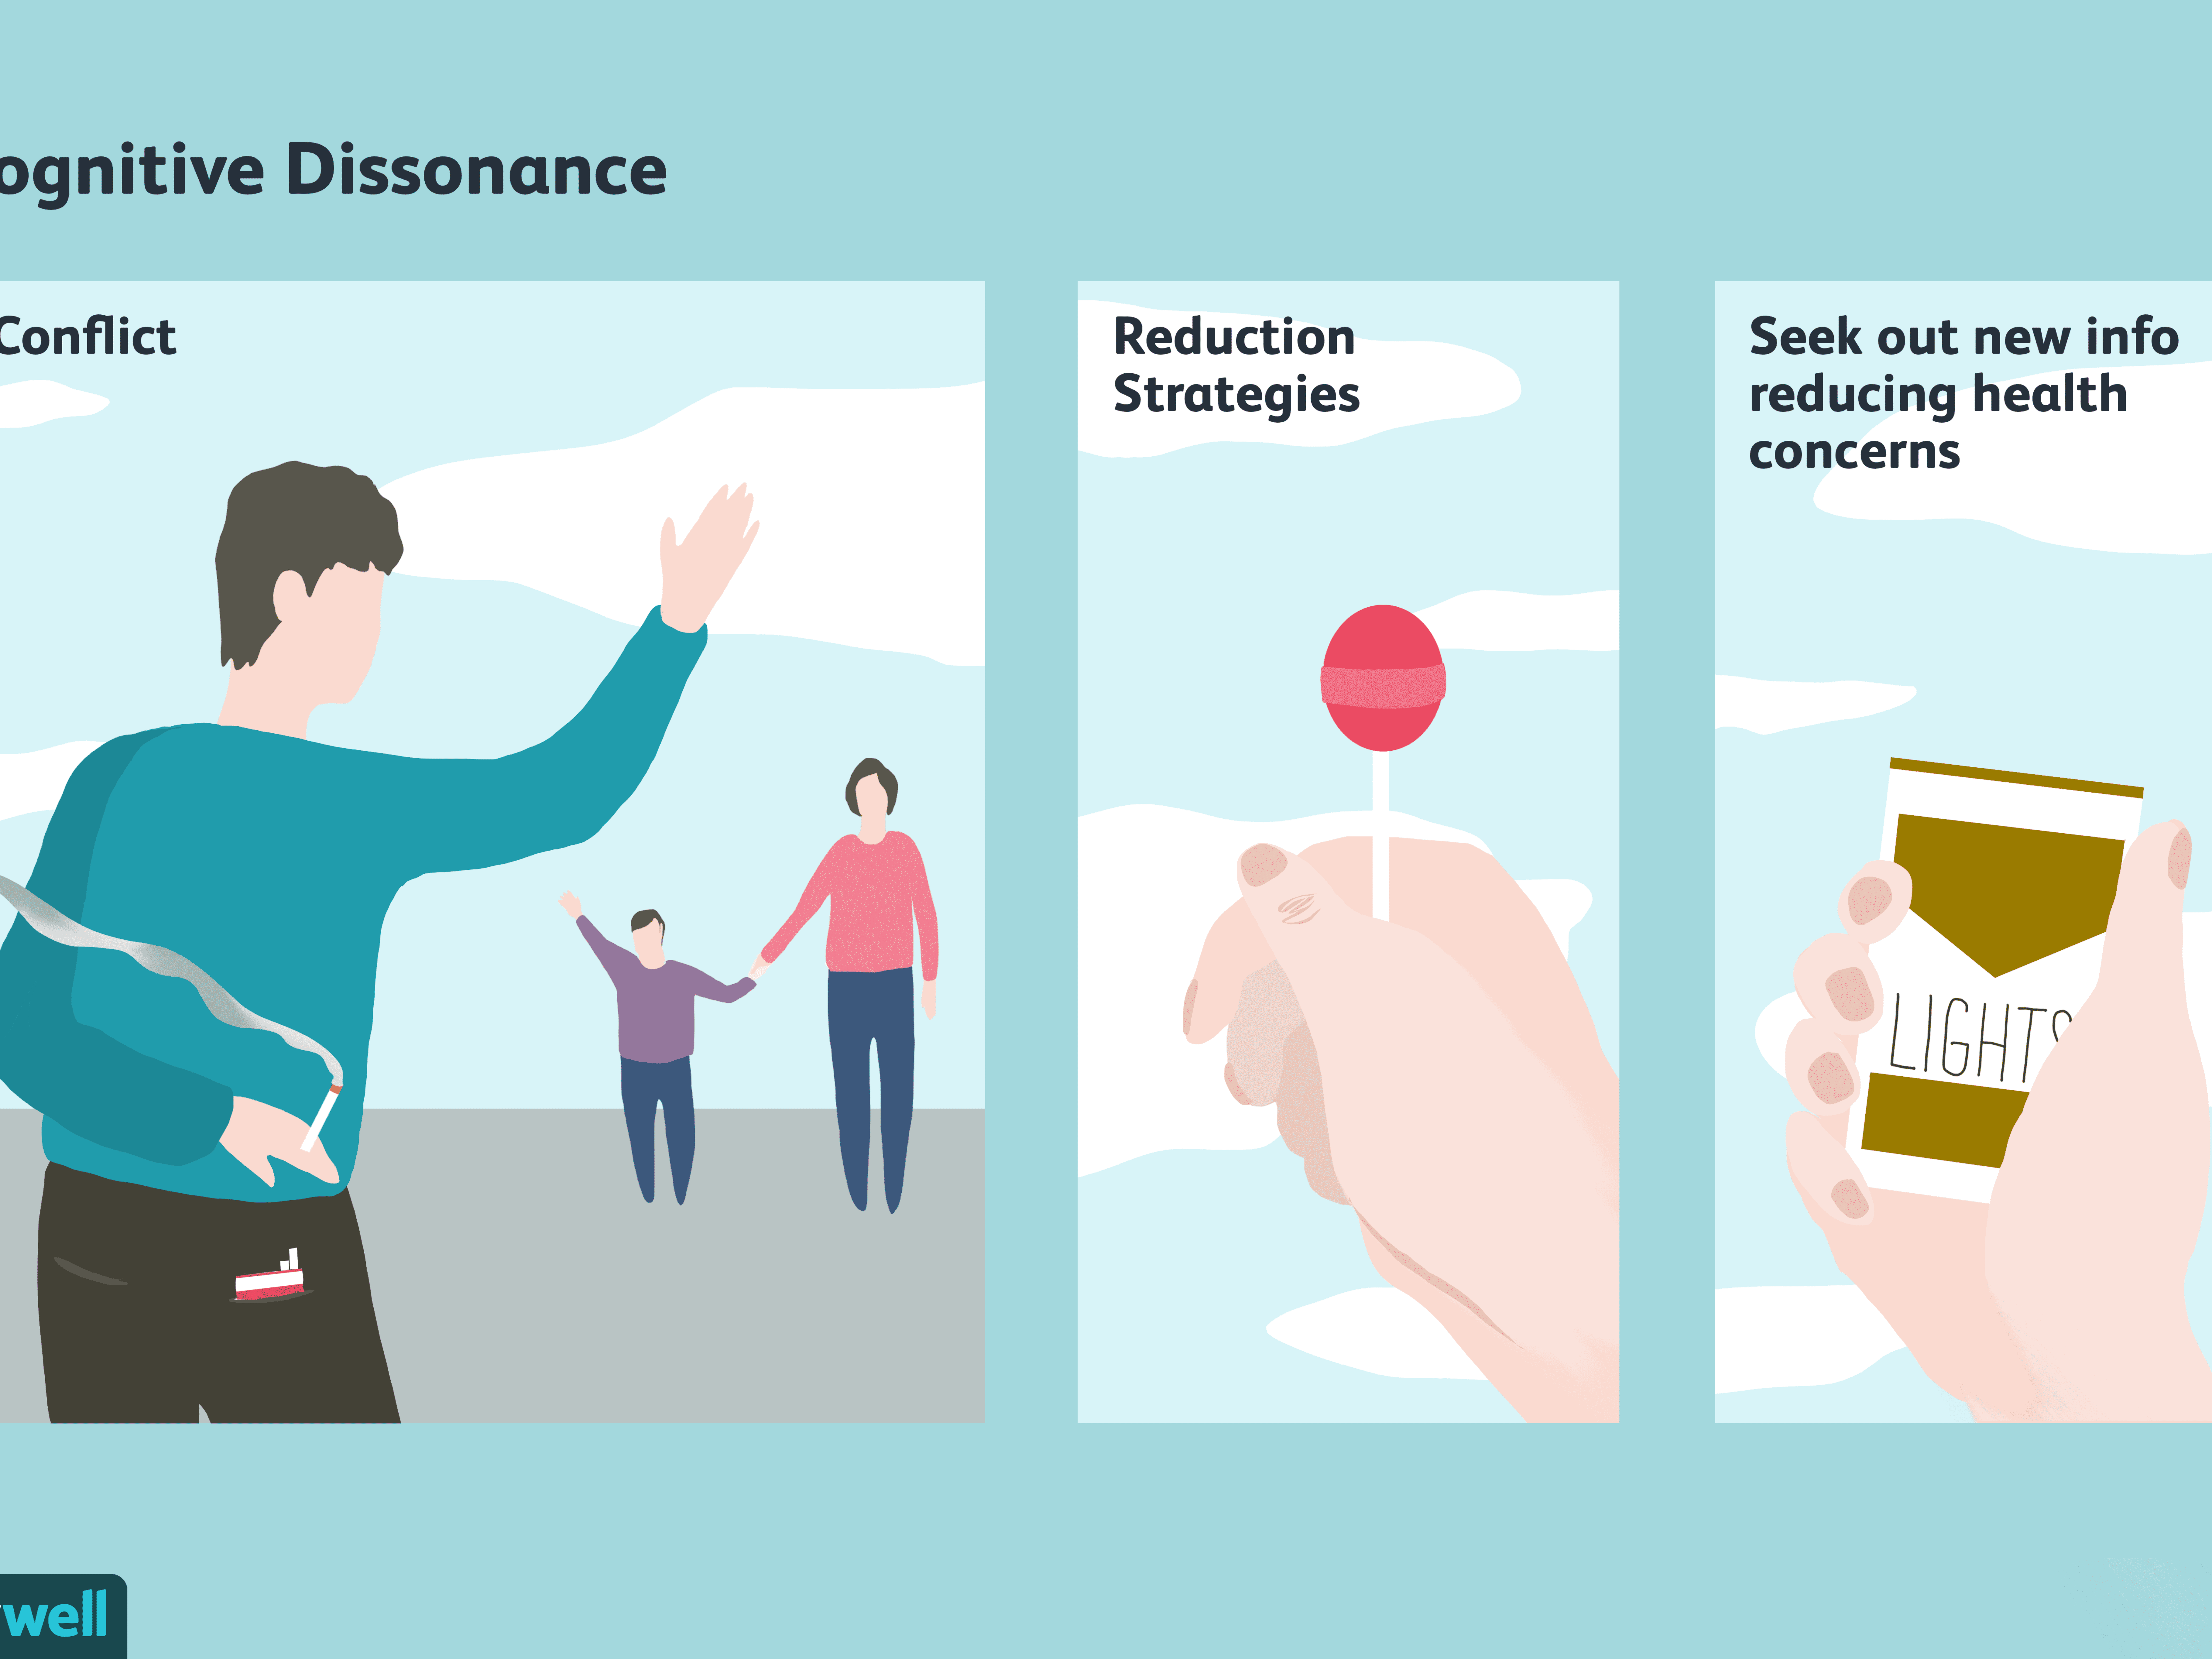 Cognitive Dissonance and How to Resolve It